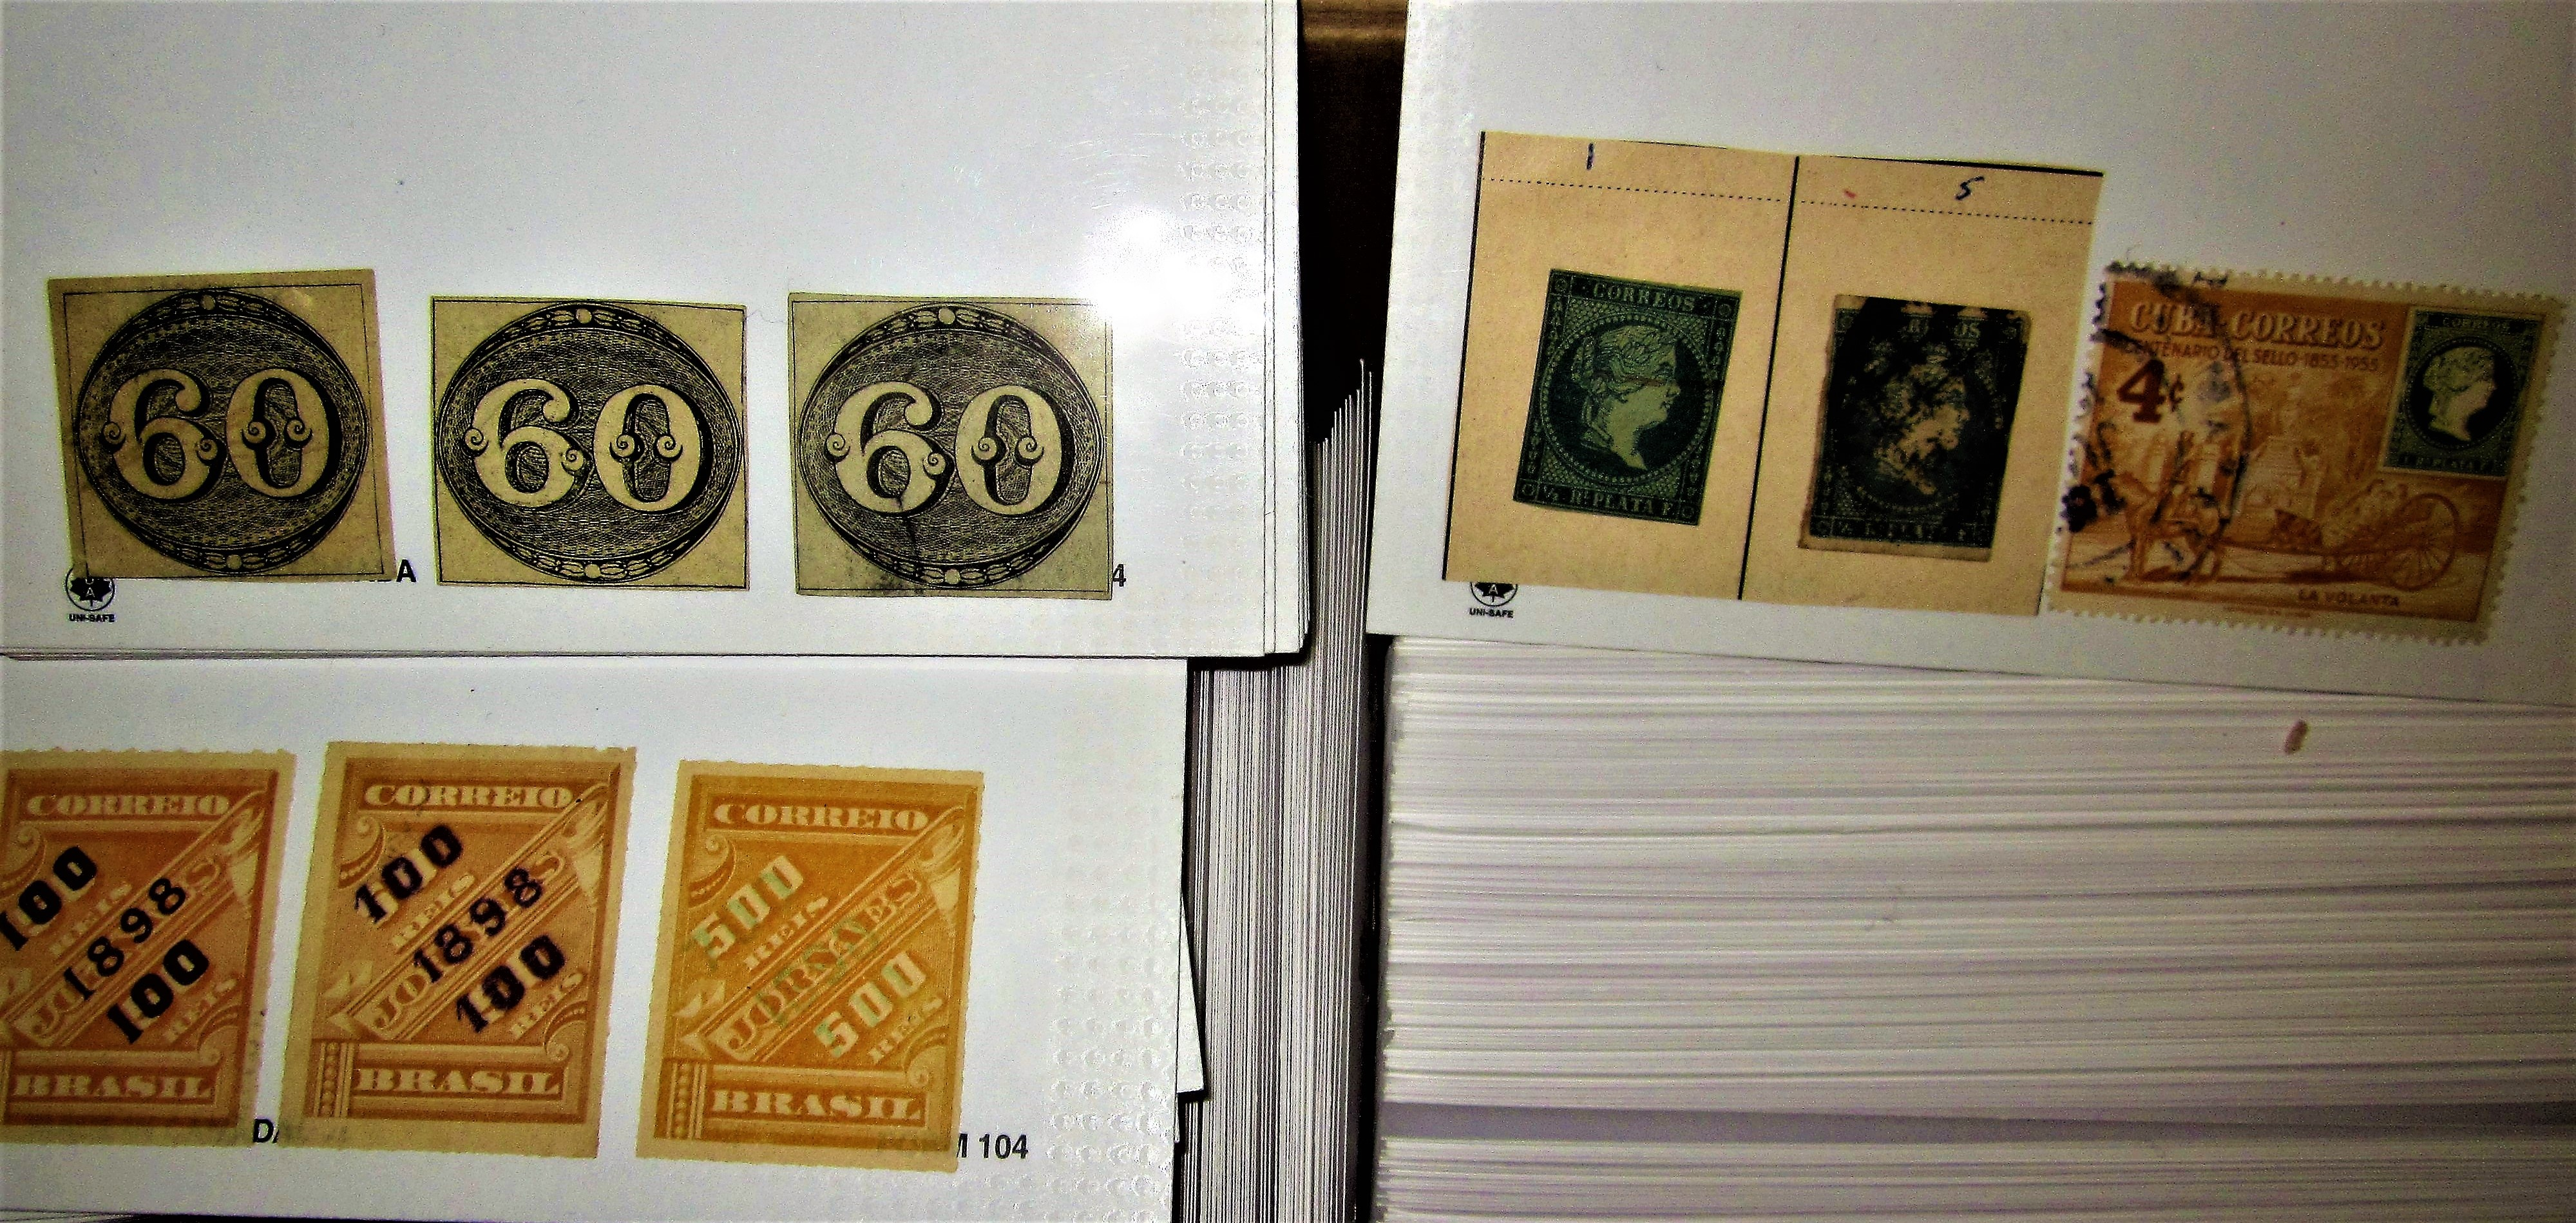 Is it still possible to make money collecting postage stamps